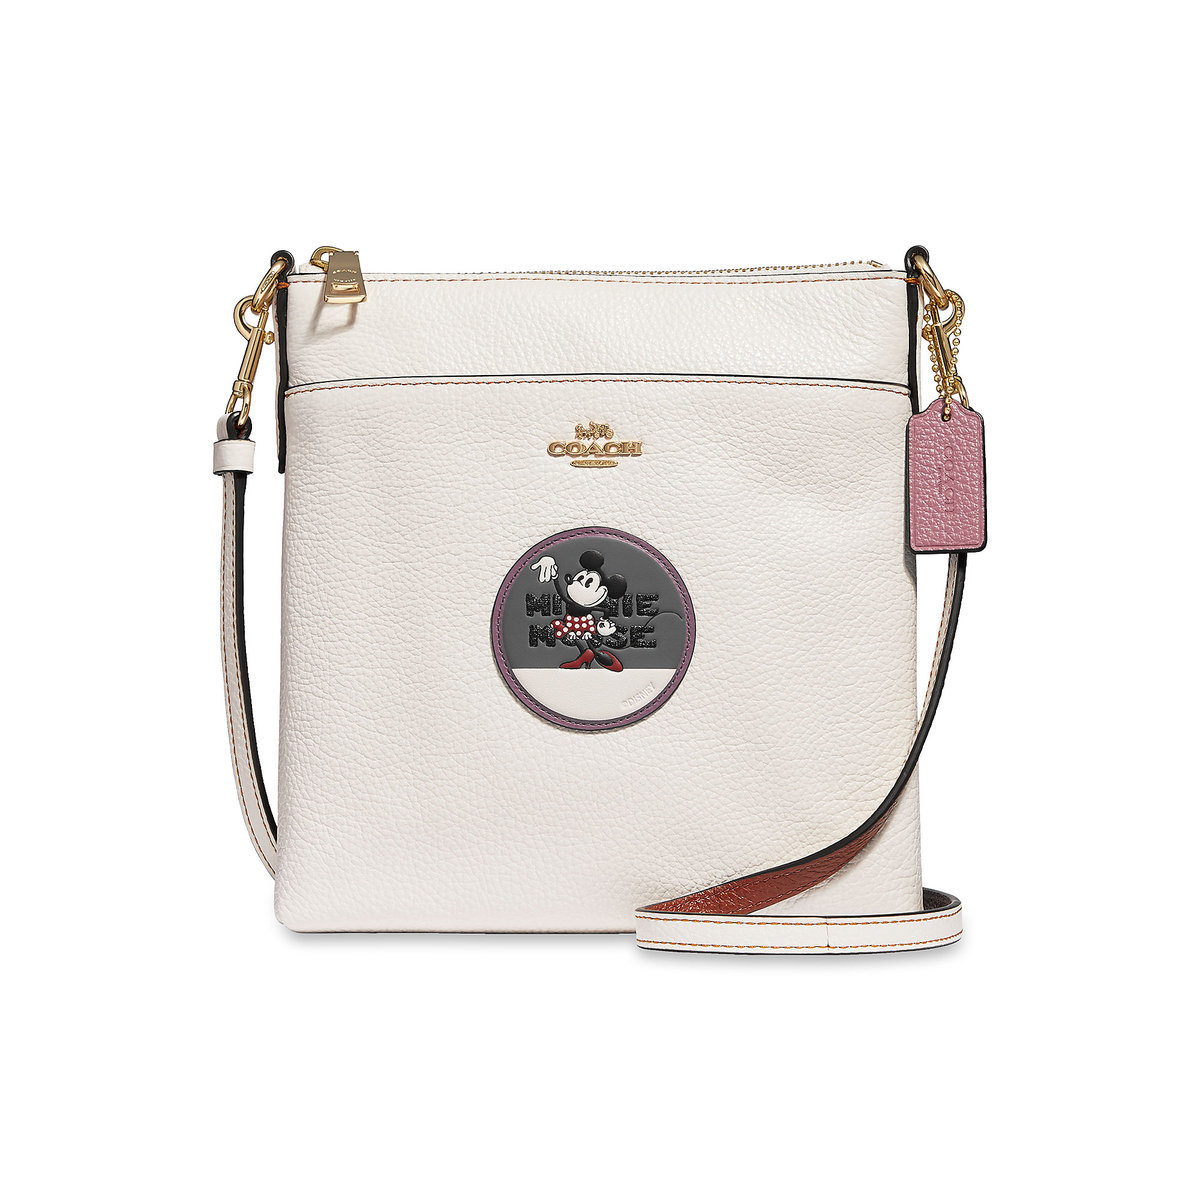 66af909ab Product Image of Minnie Mouse Crossbody Bag by COACH # 1